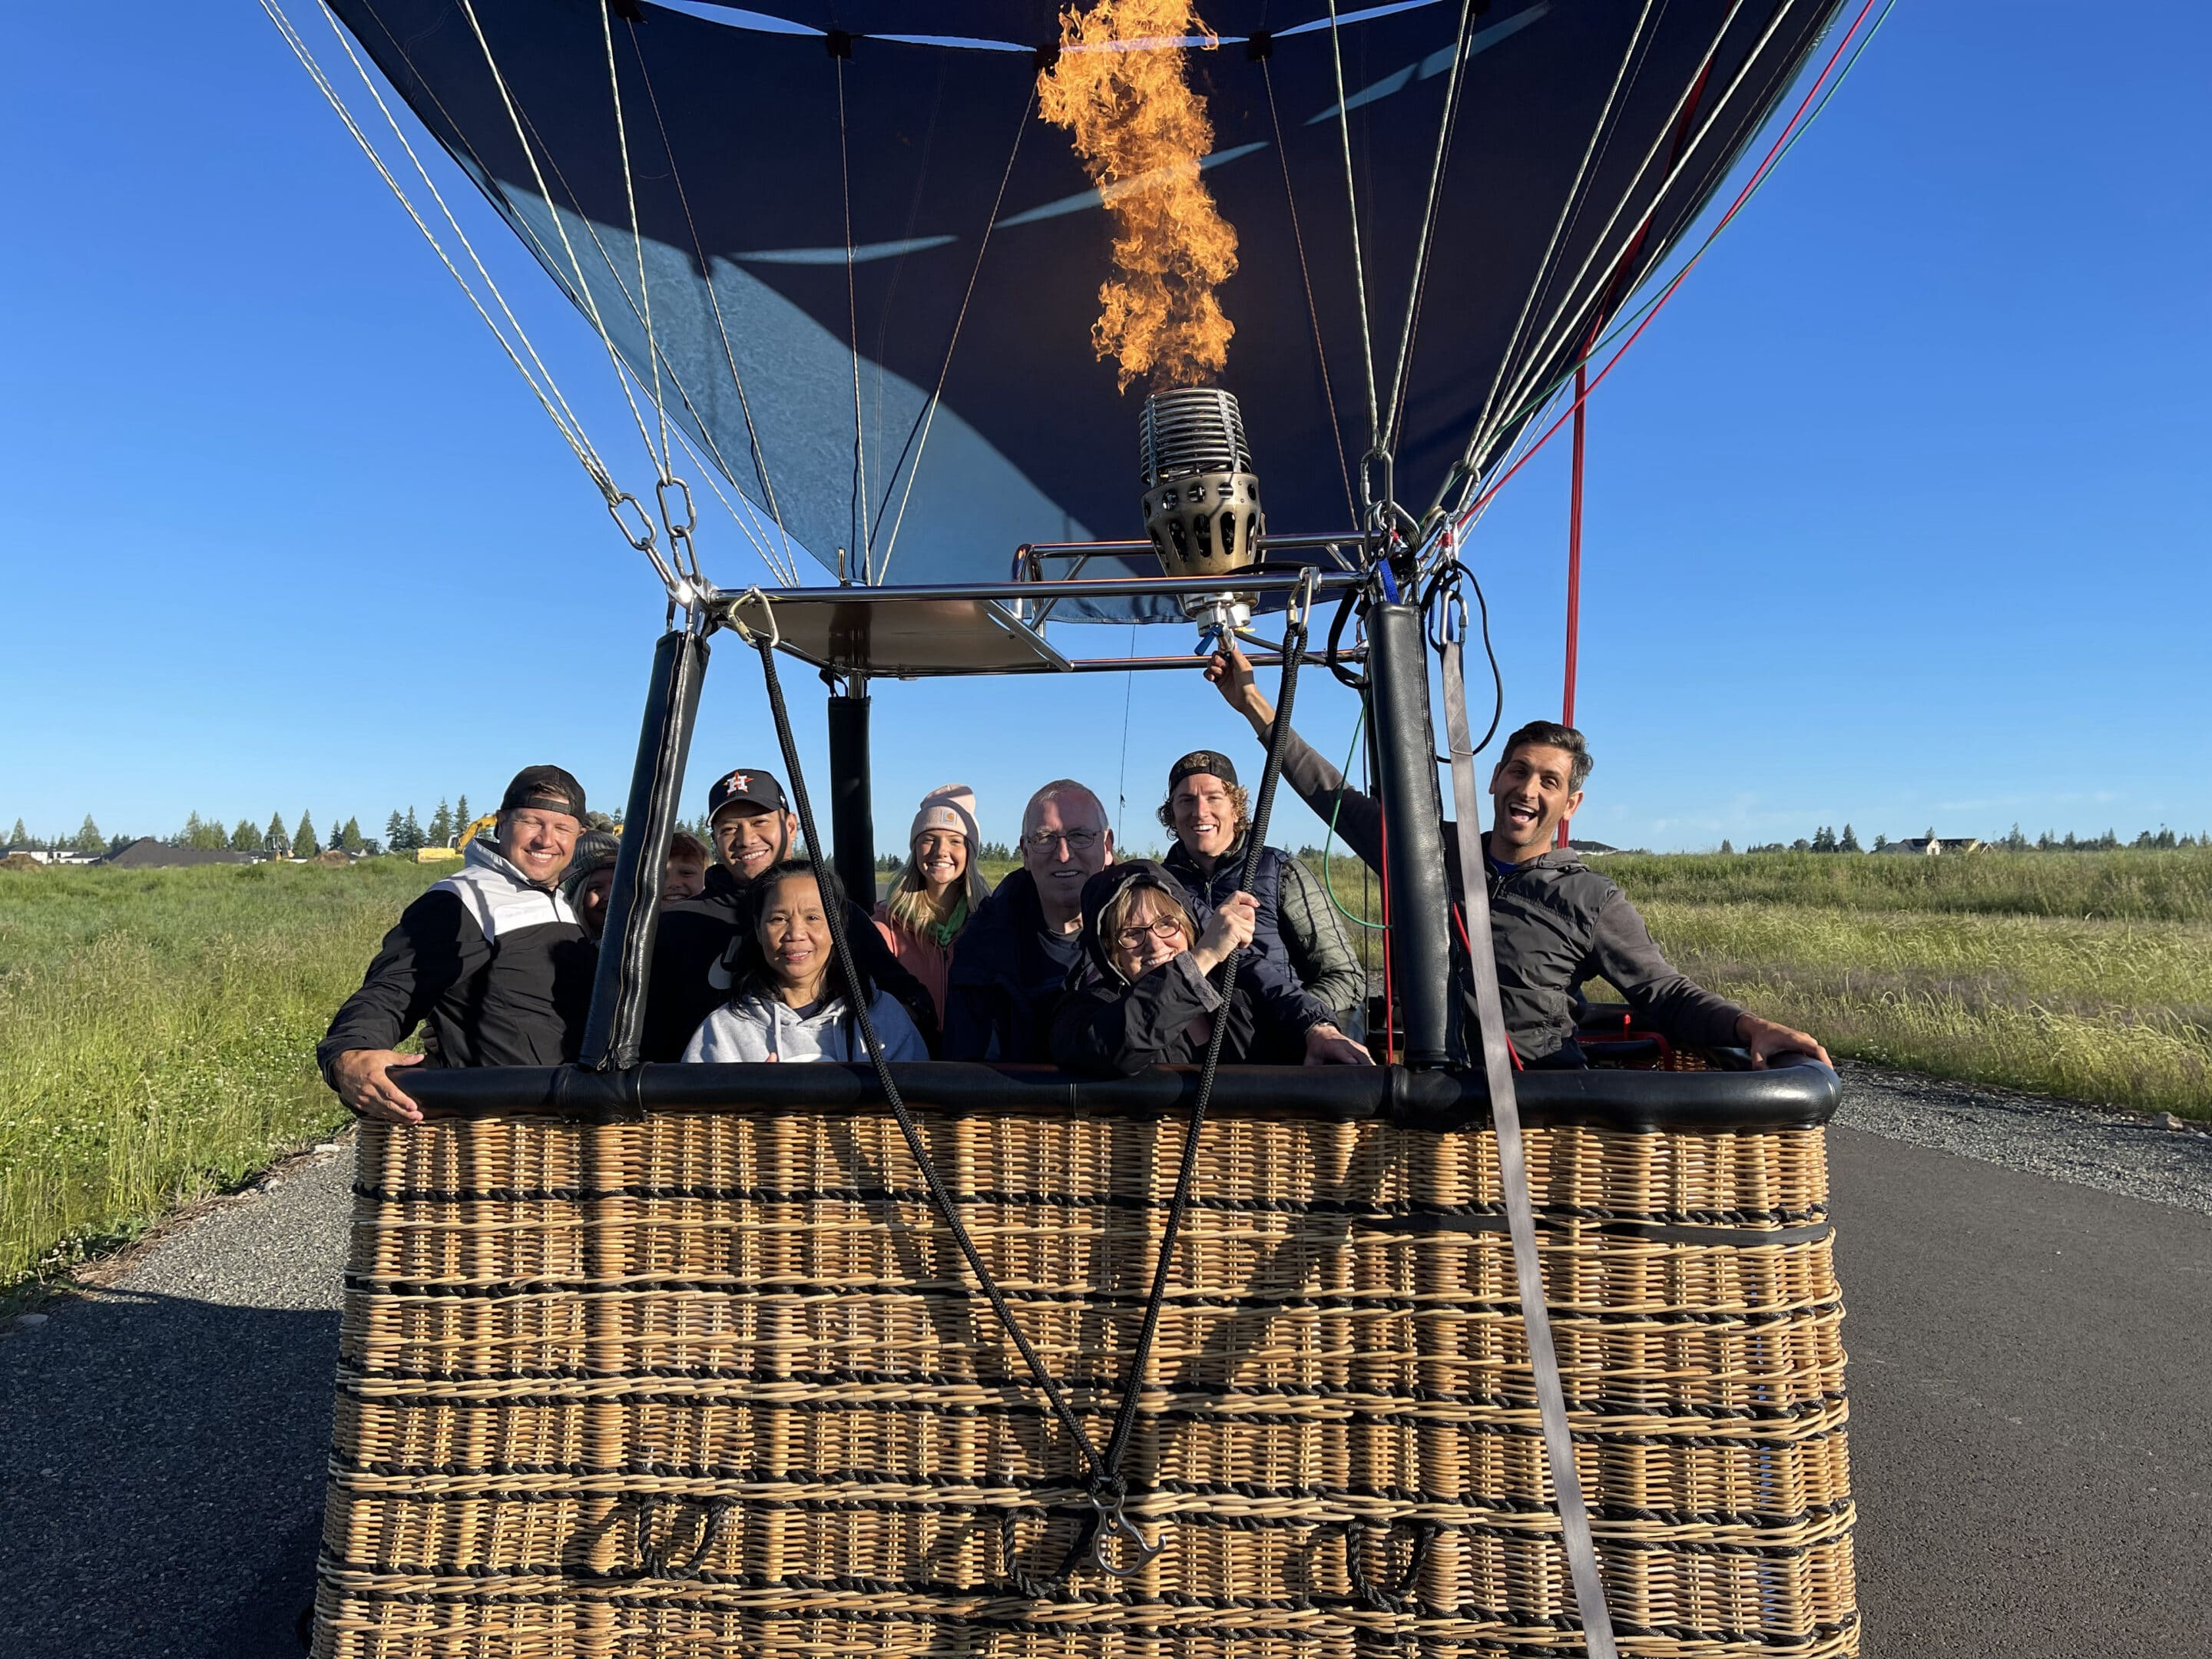 hot air balloon rides with group